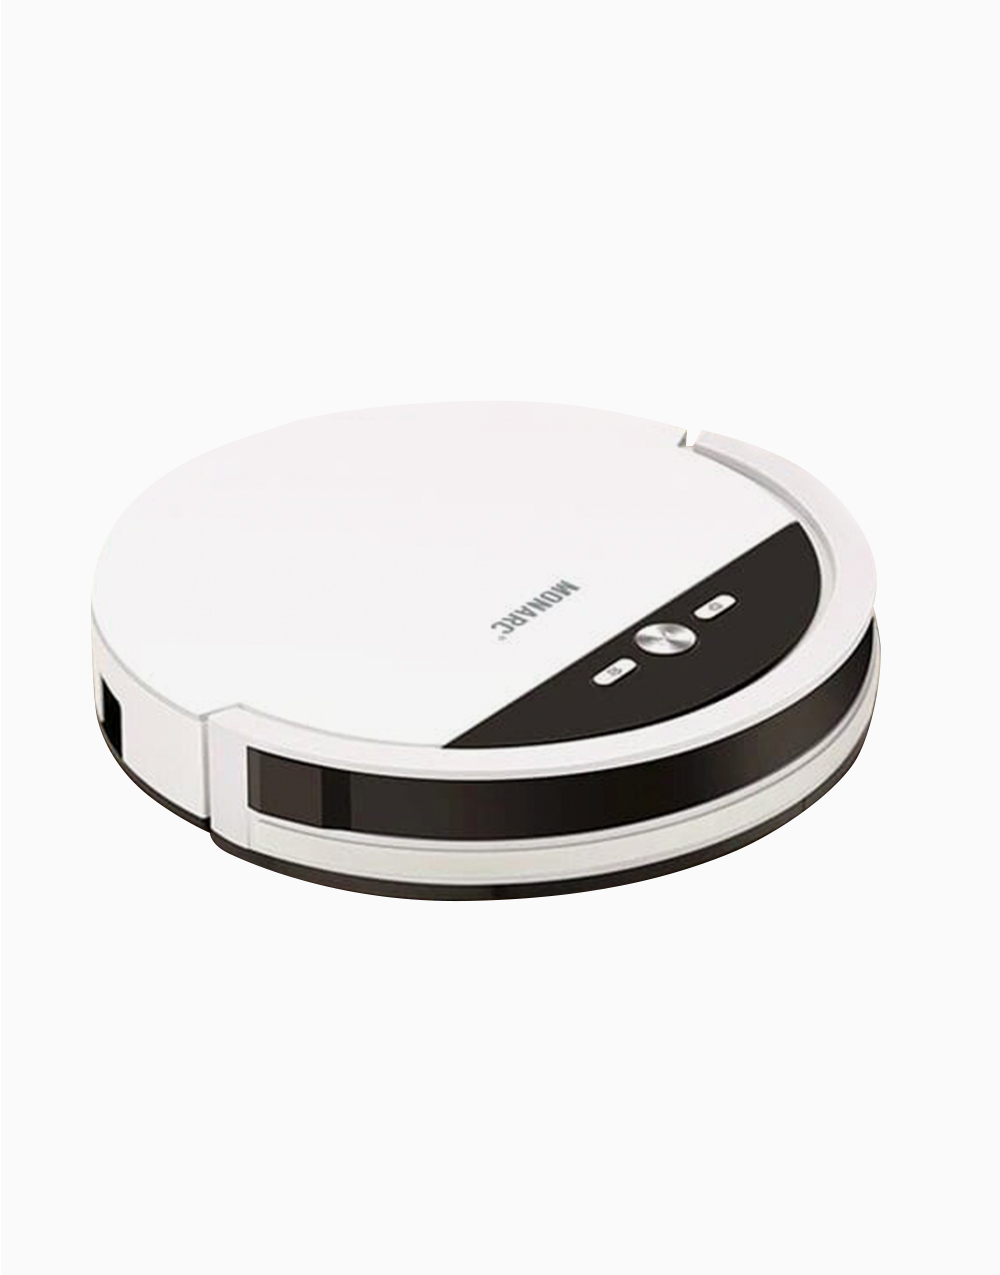 Botbot Robot Vacuum Cleaner by Monarc